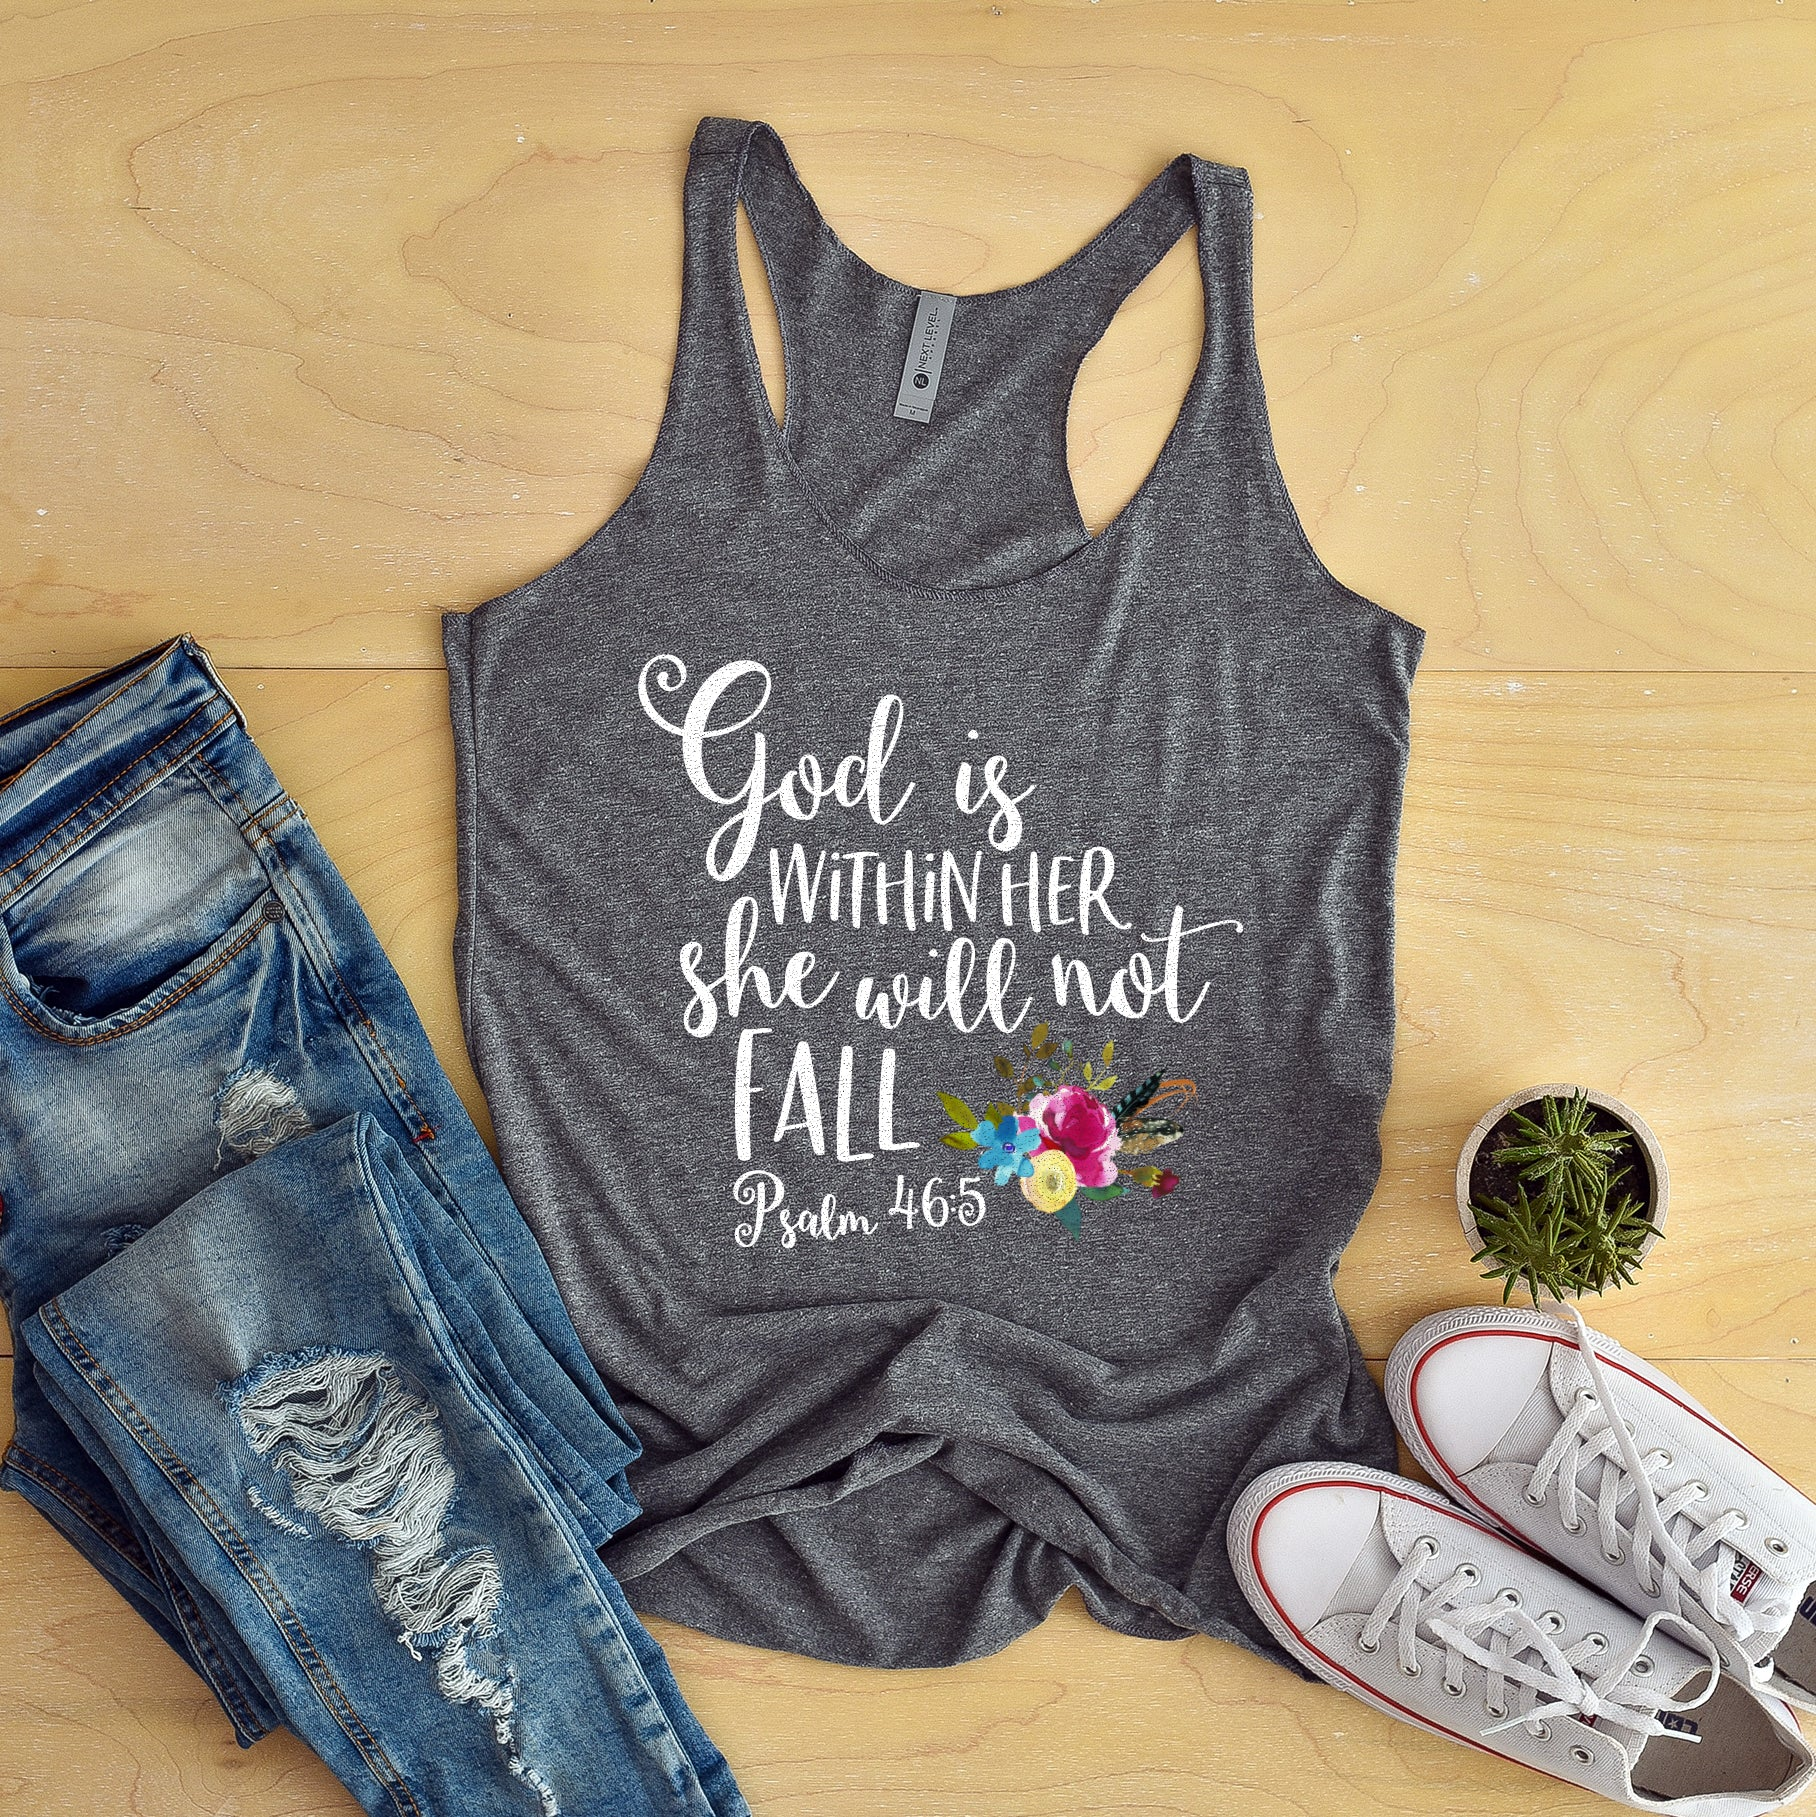 God Is Within Her She Will Not Fall Racerback Tank Top - Bella Faith - Christian Shirts for Women - Women's Faith Based Apparel - Christian Clothing for Women - Christian Jewelry and Gifts for Women - Trendy Christian Tees